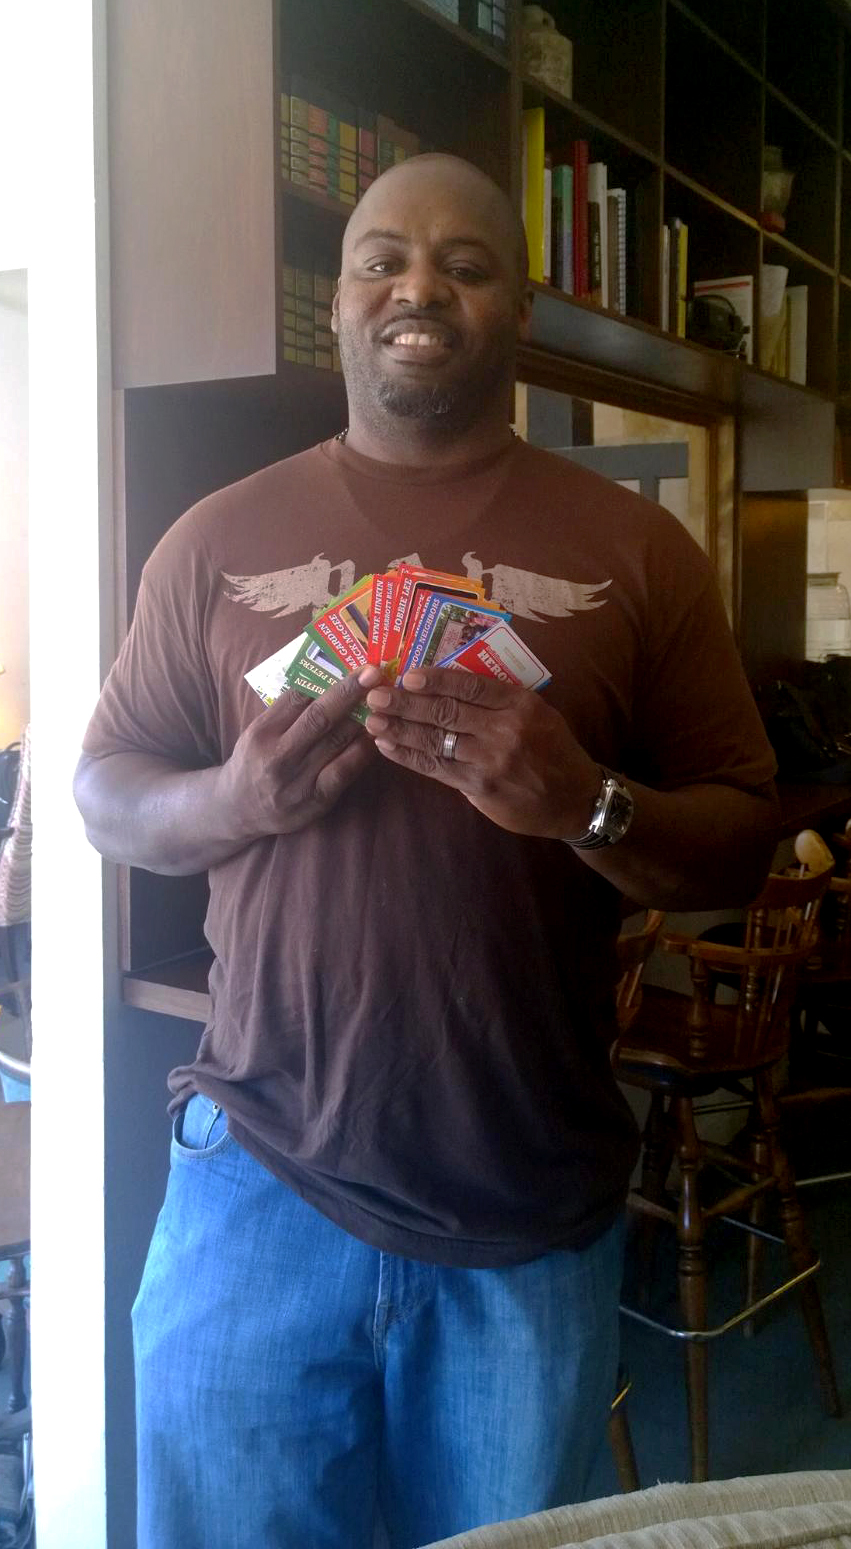 Patrick McGee with his set of cards.